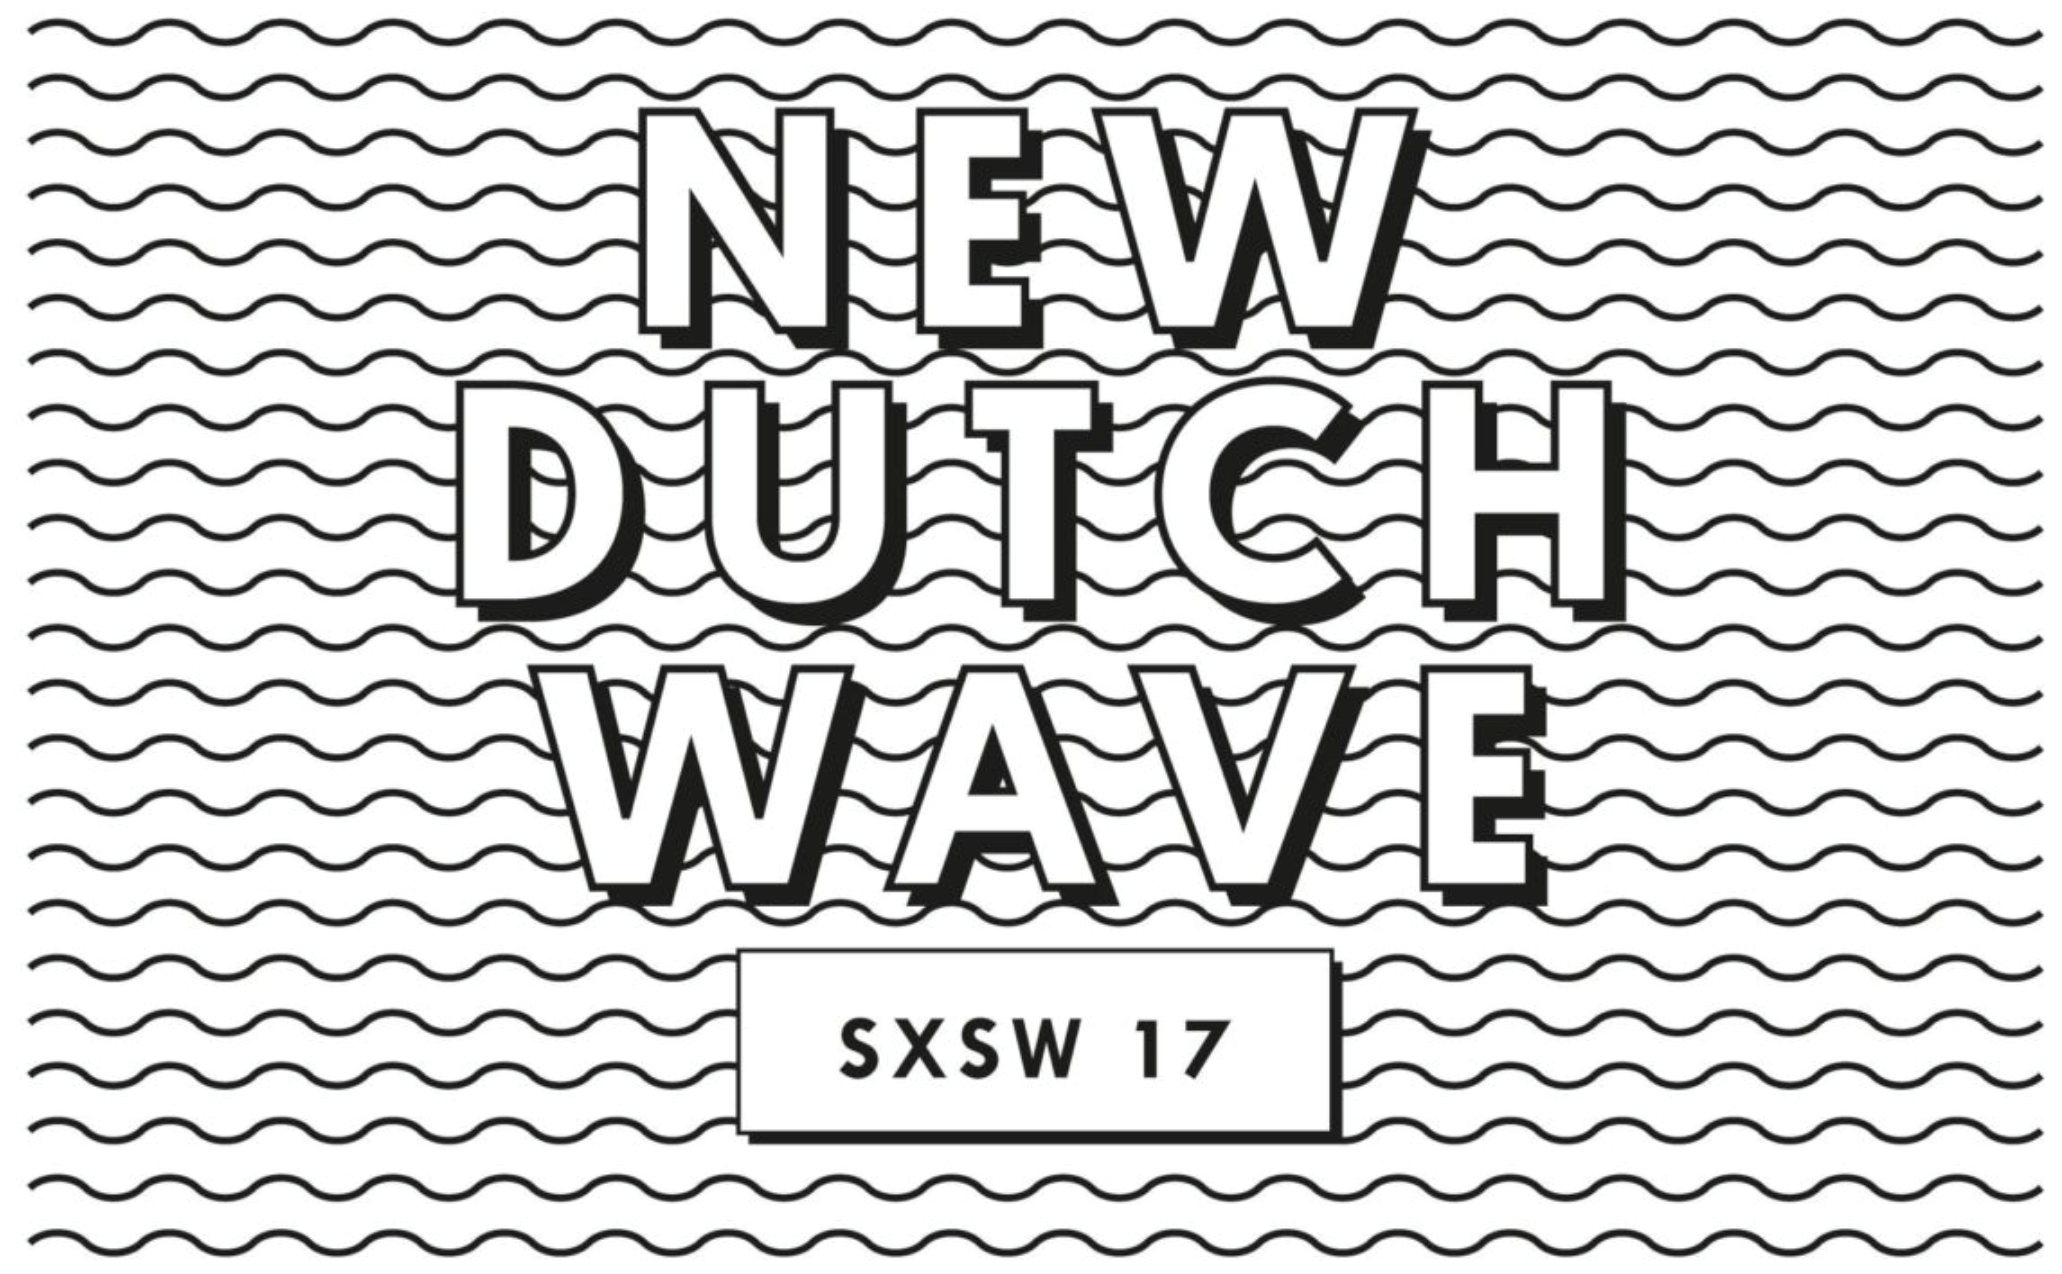 New Dutch Wave about to hit SXSW